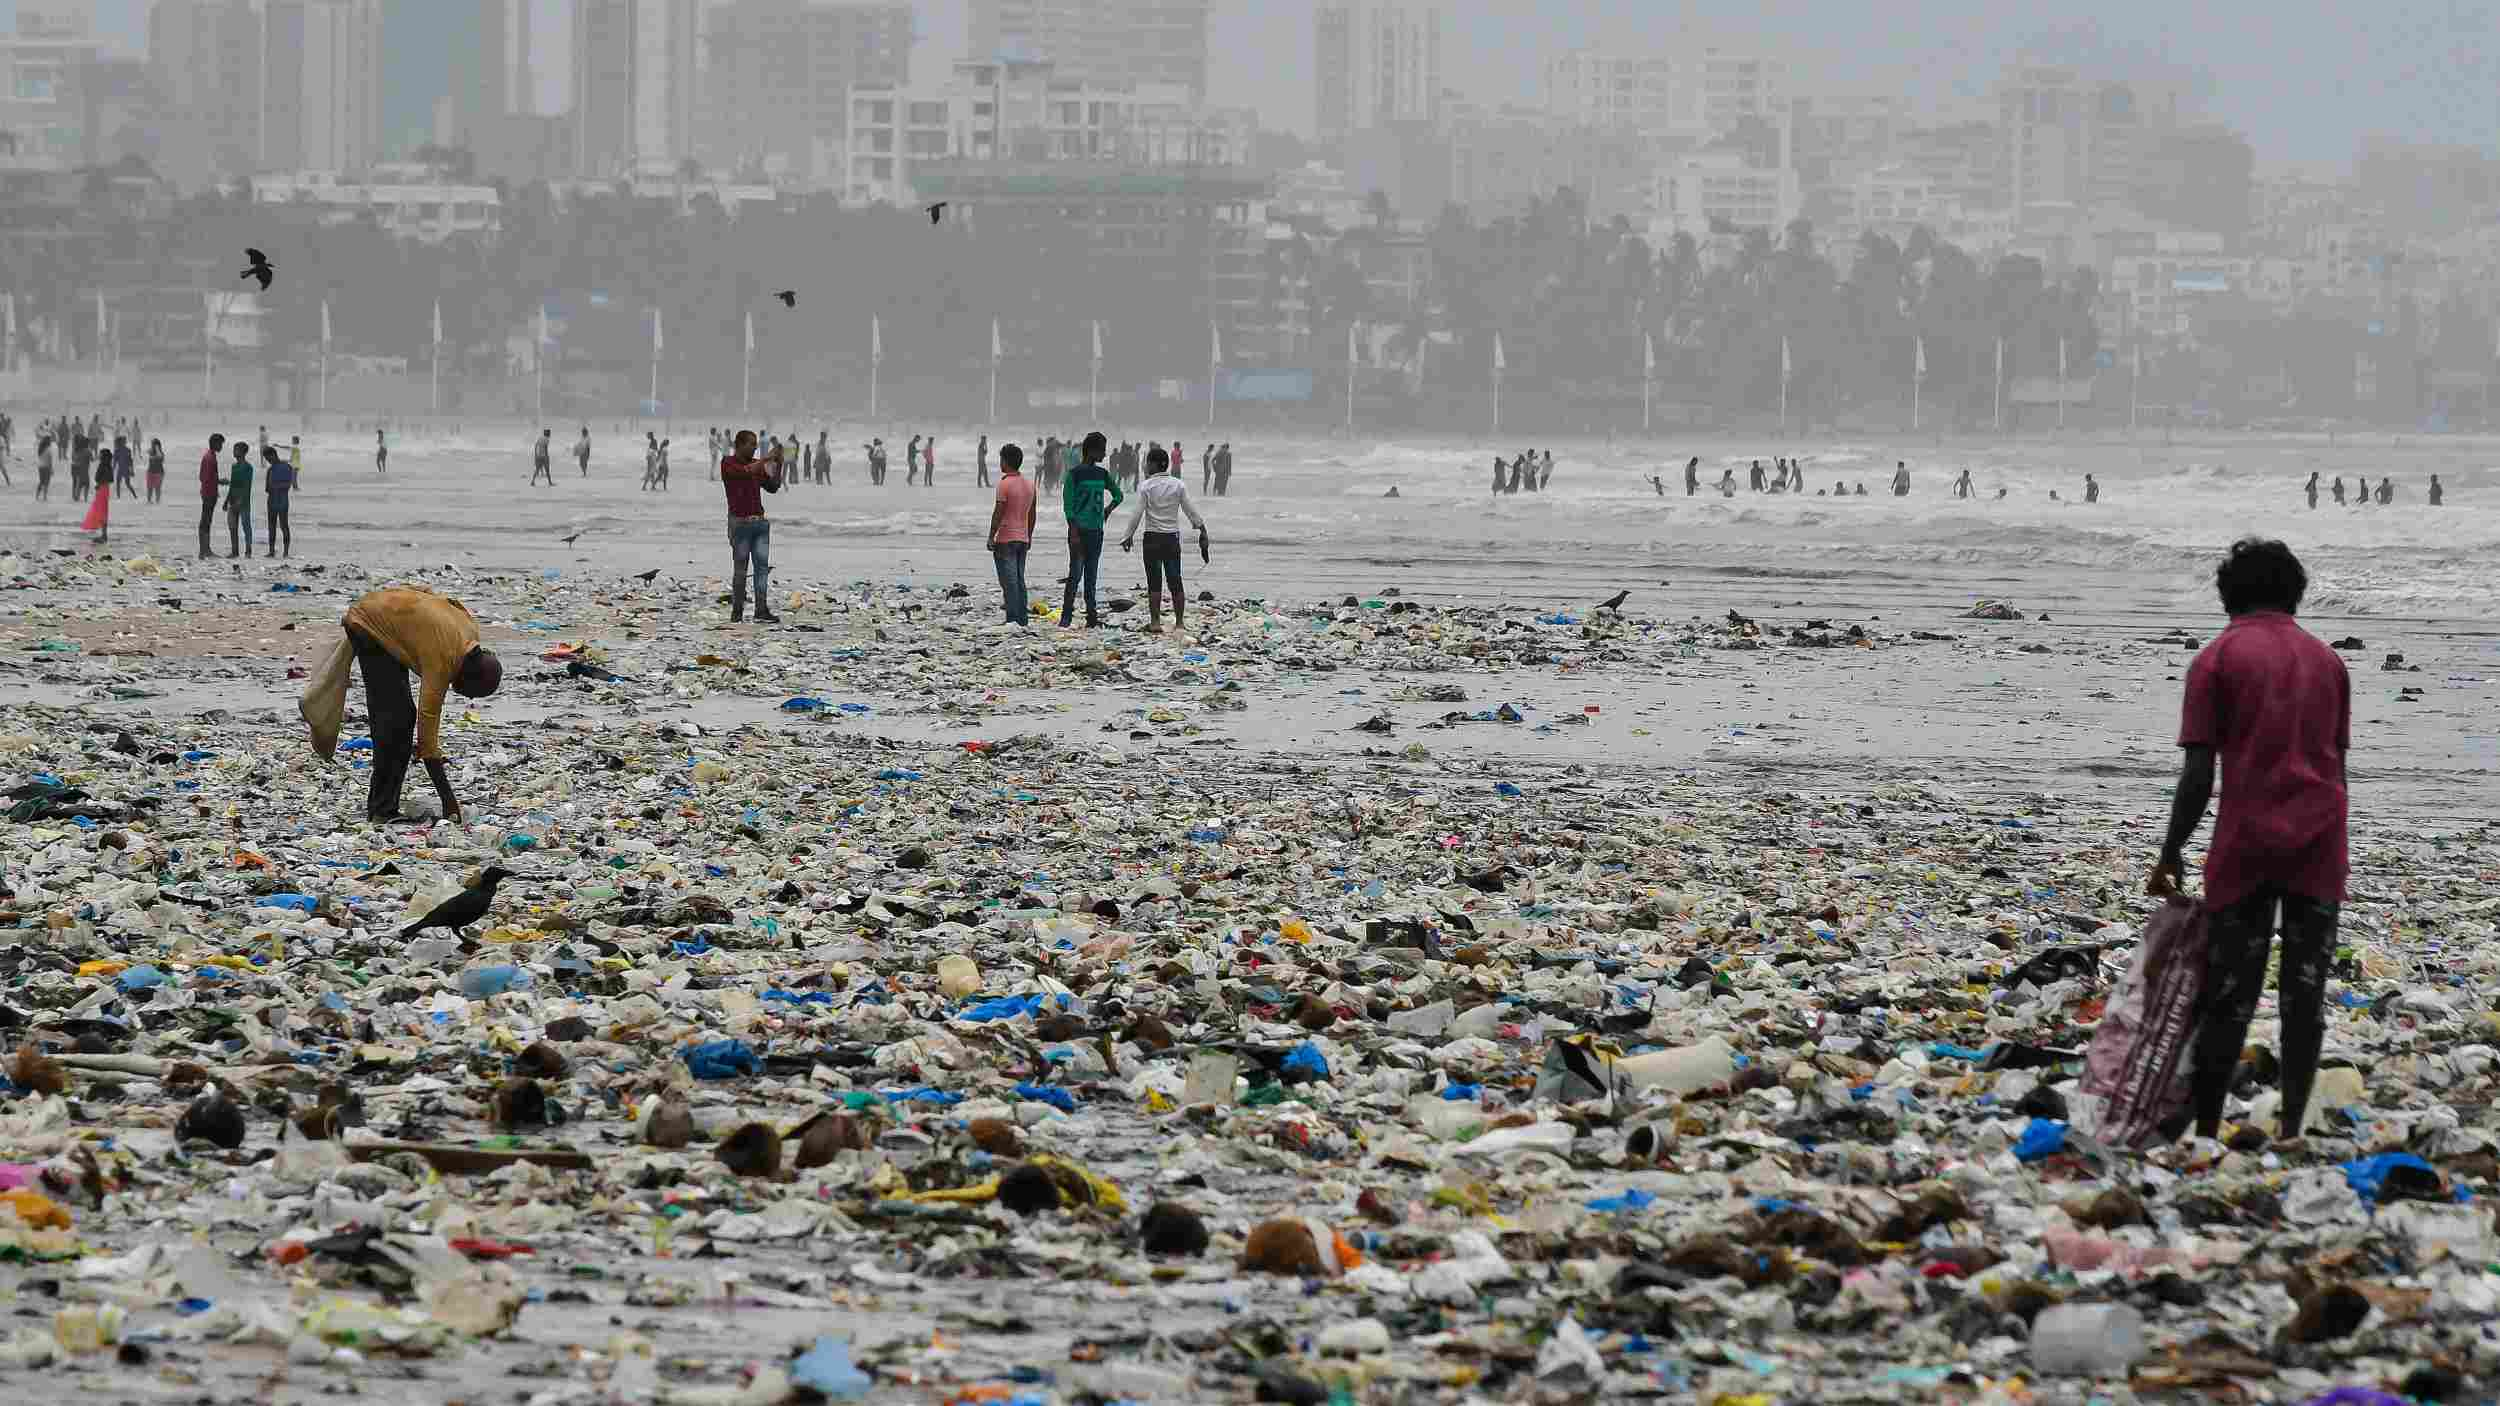 186 countries in the world agree deal to cut plastic pollution, not including the U.S.